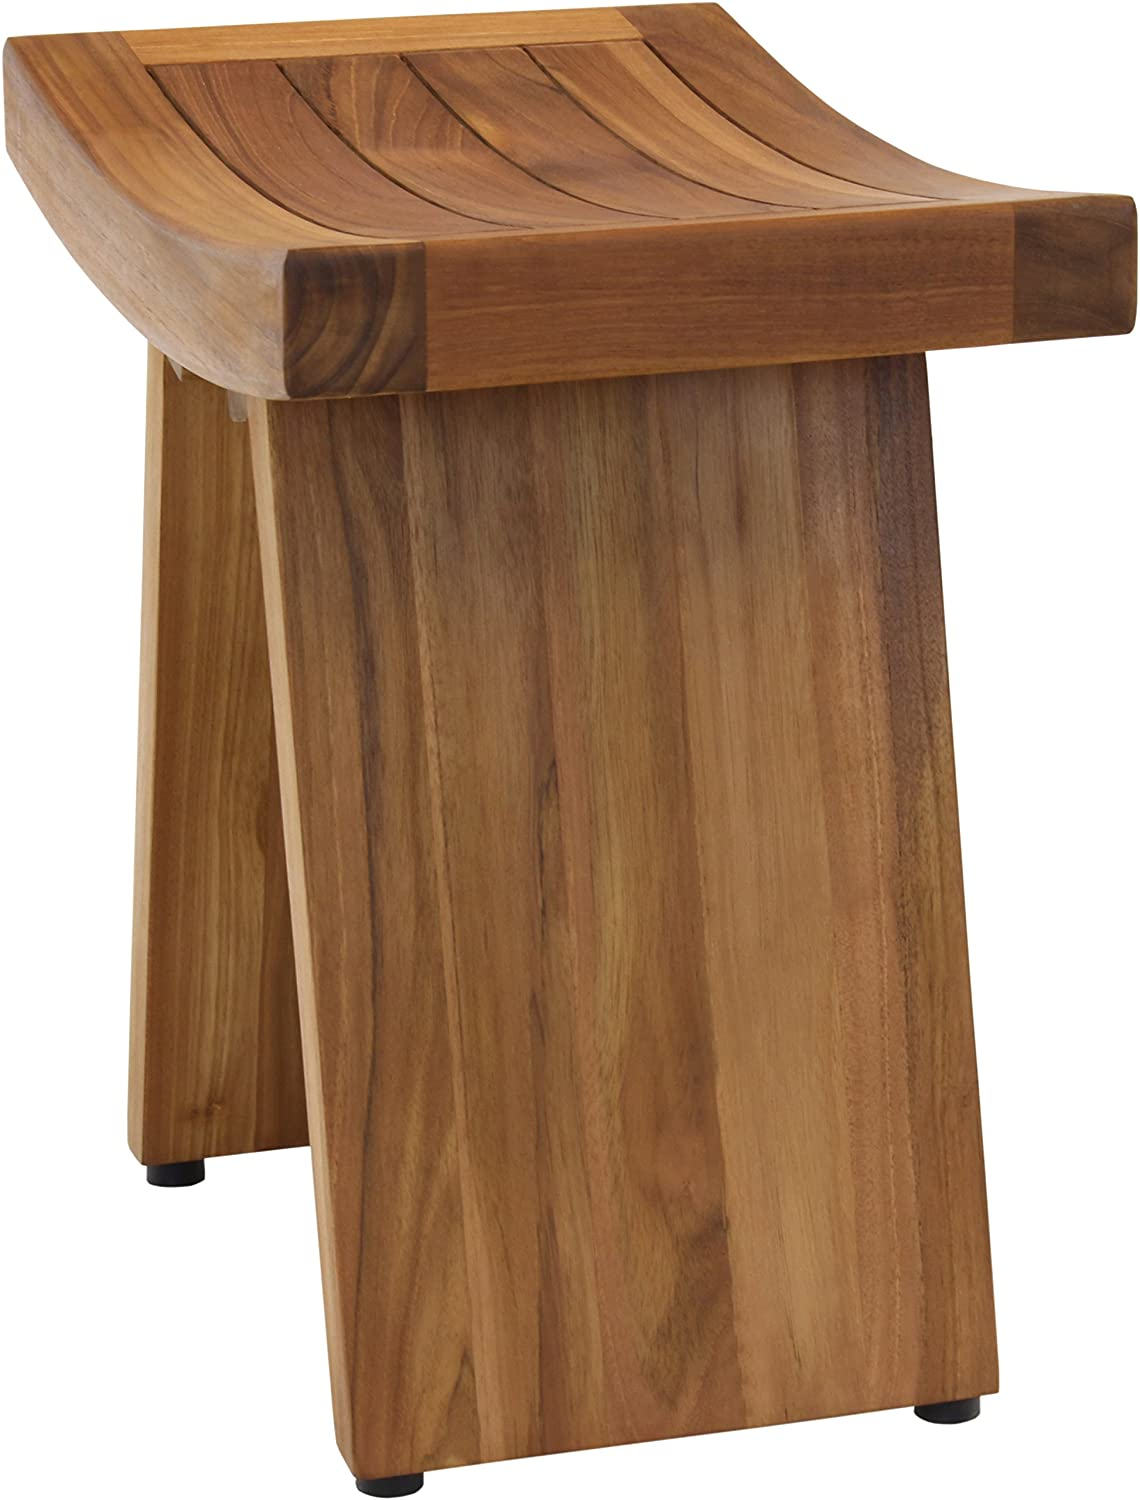 The Original 18 Quot Asia Teak Shower Bench Business